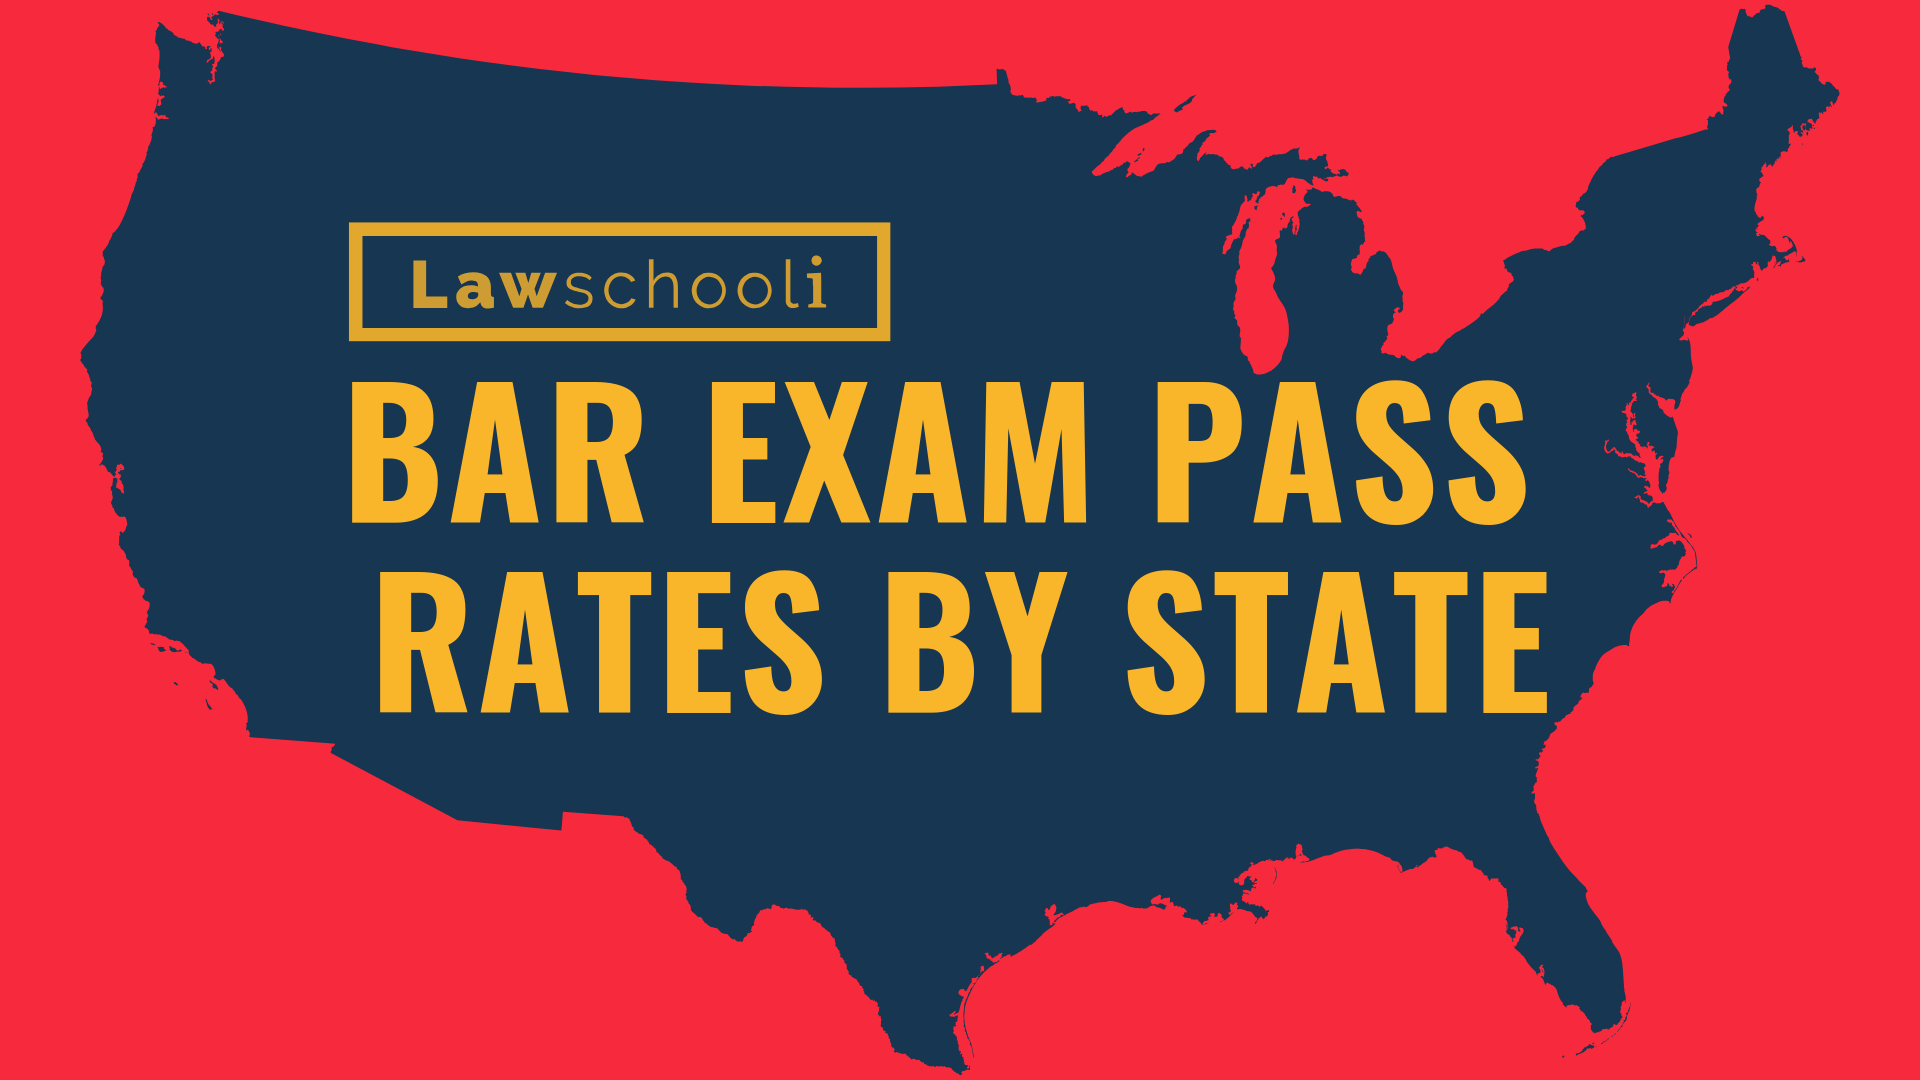 Bar Exam Pass Rate By State - LawSchooli